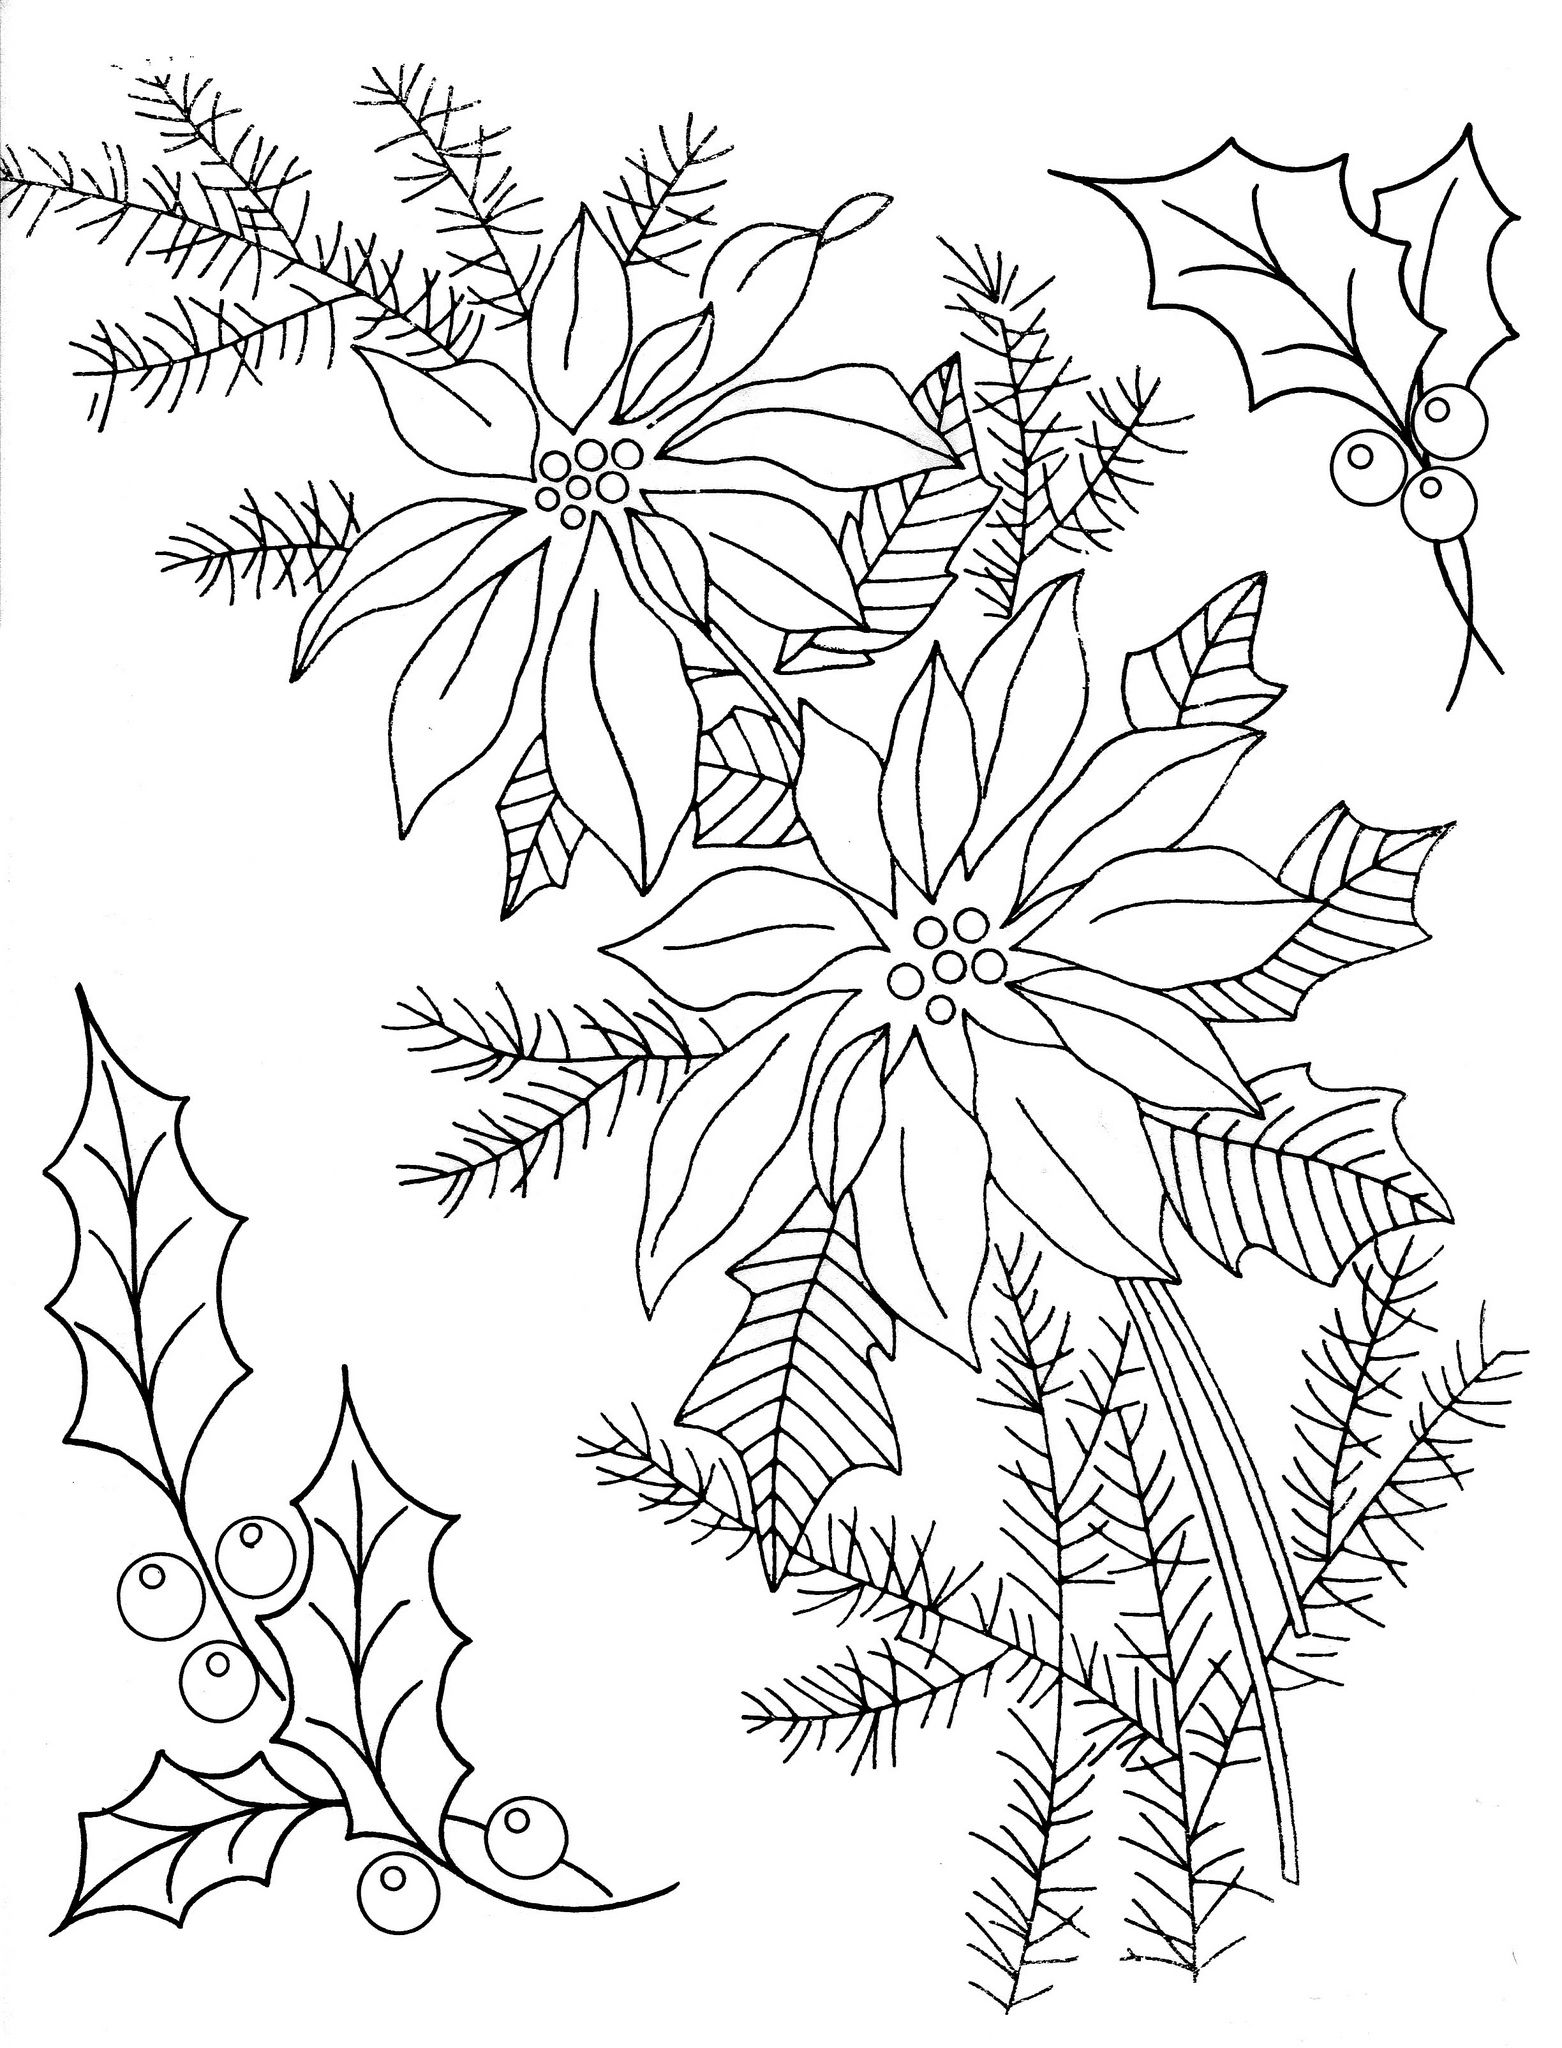 Holly & Poinsettia Embroidery Patterns | Navidad2016 | Pinterest ...